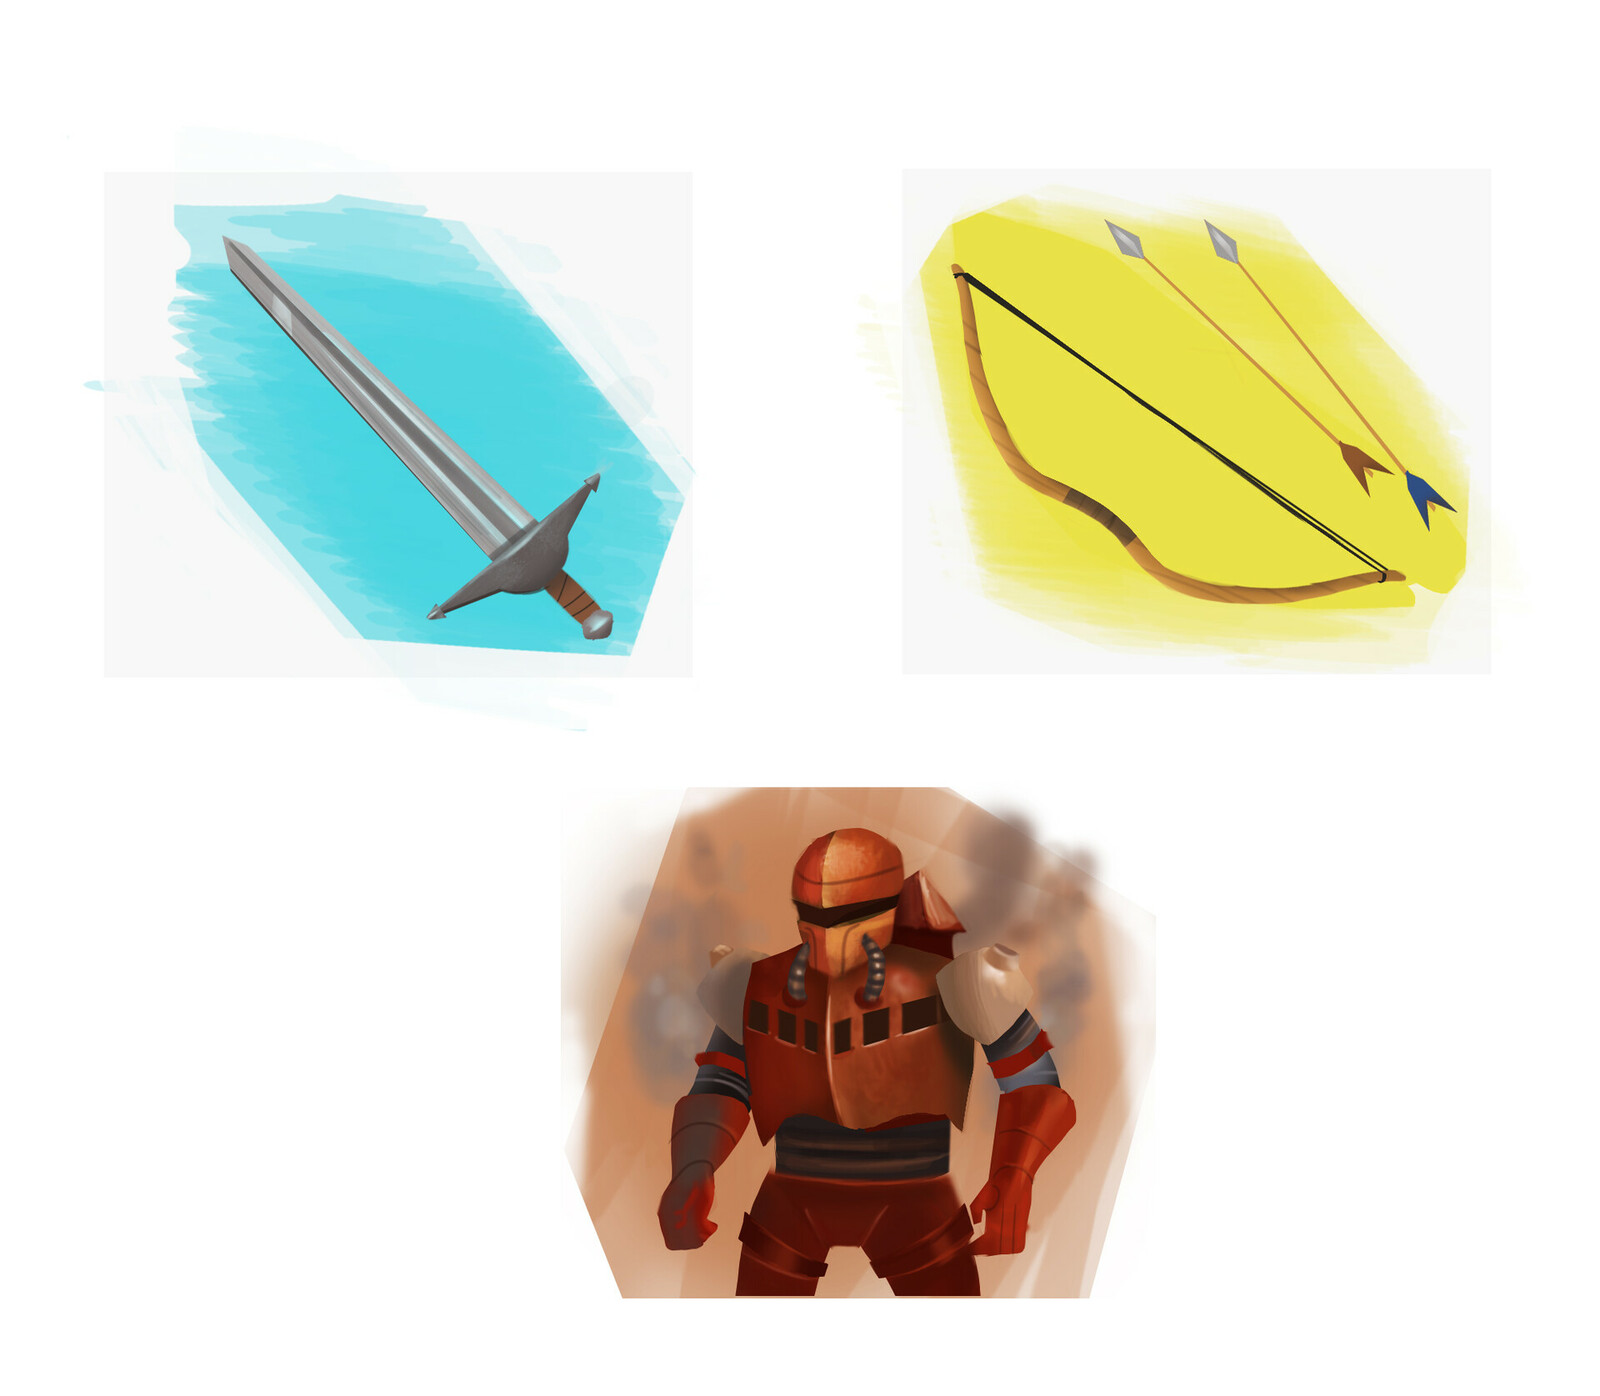 Unused weapon assets